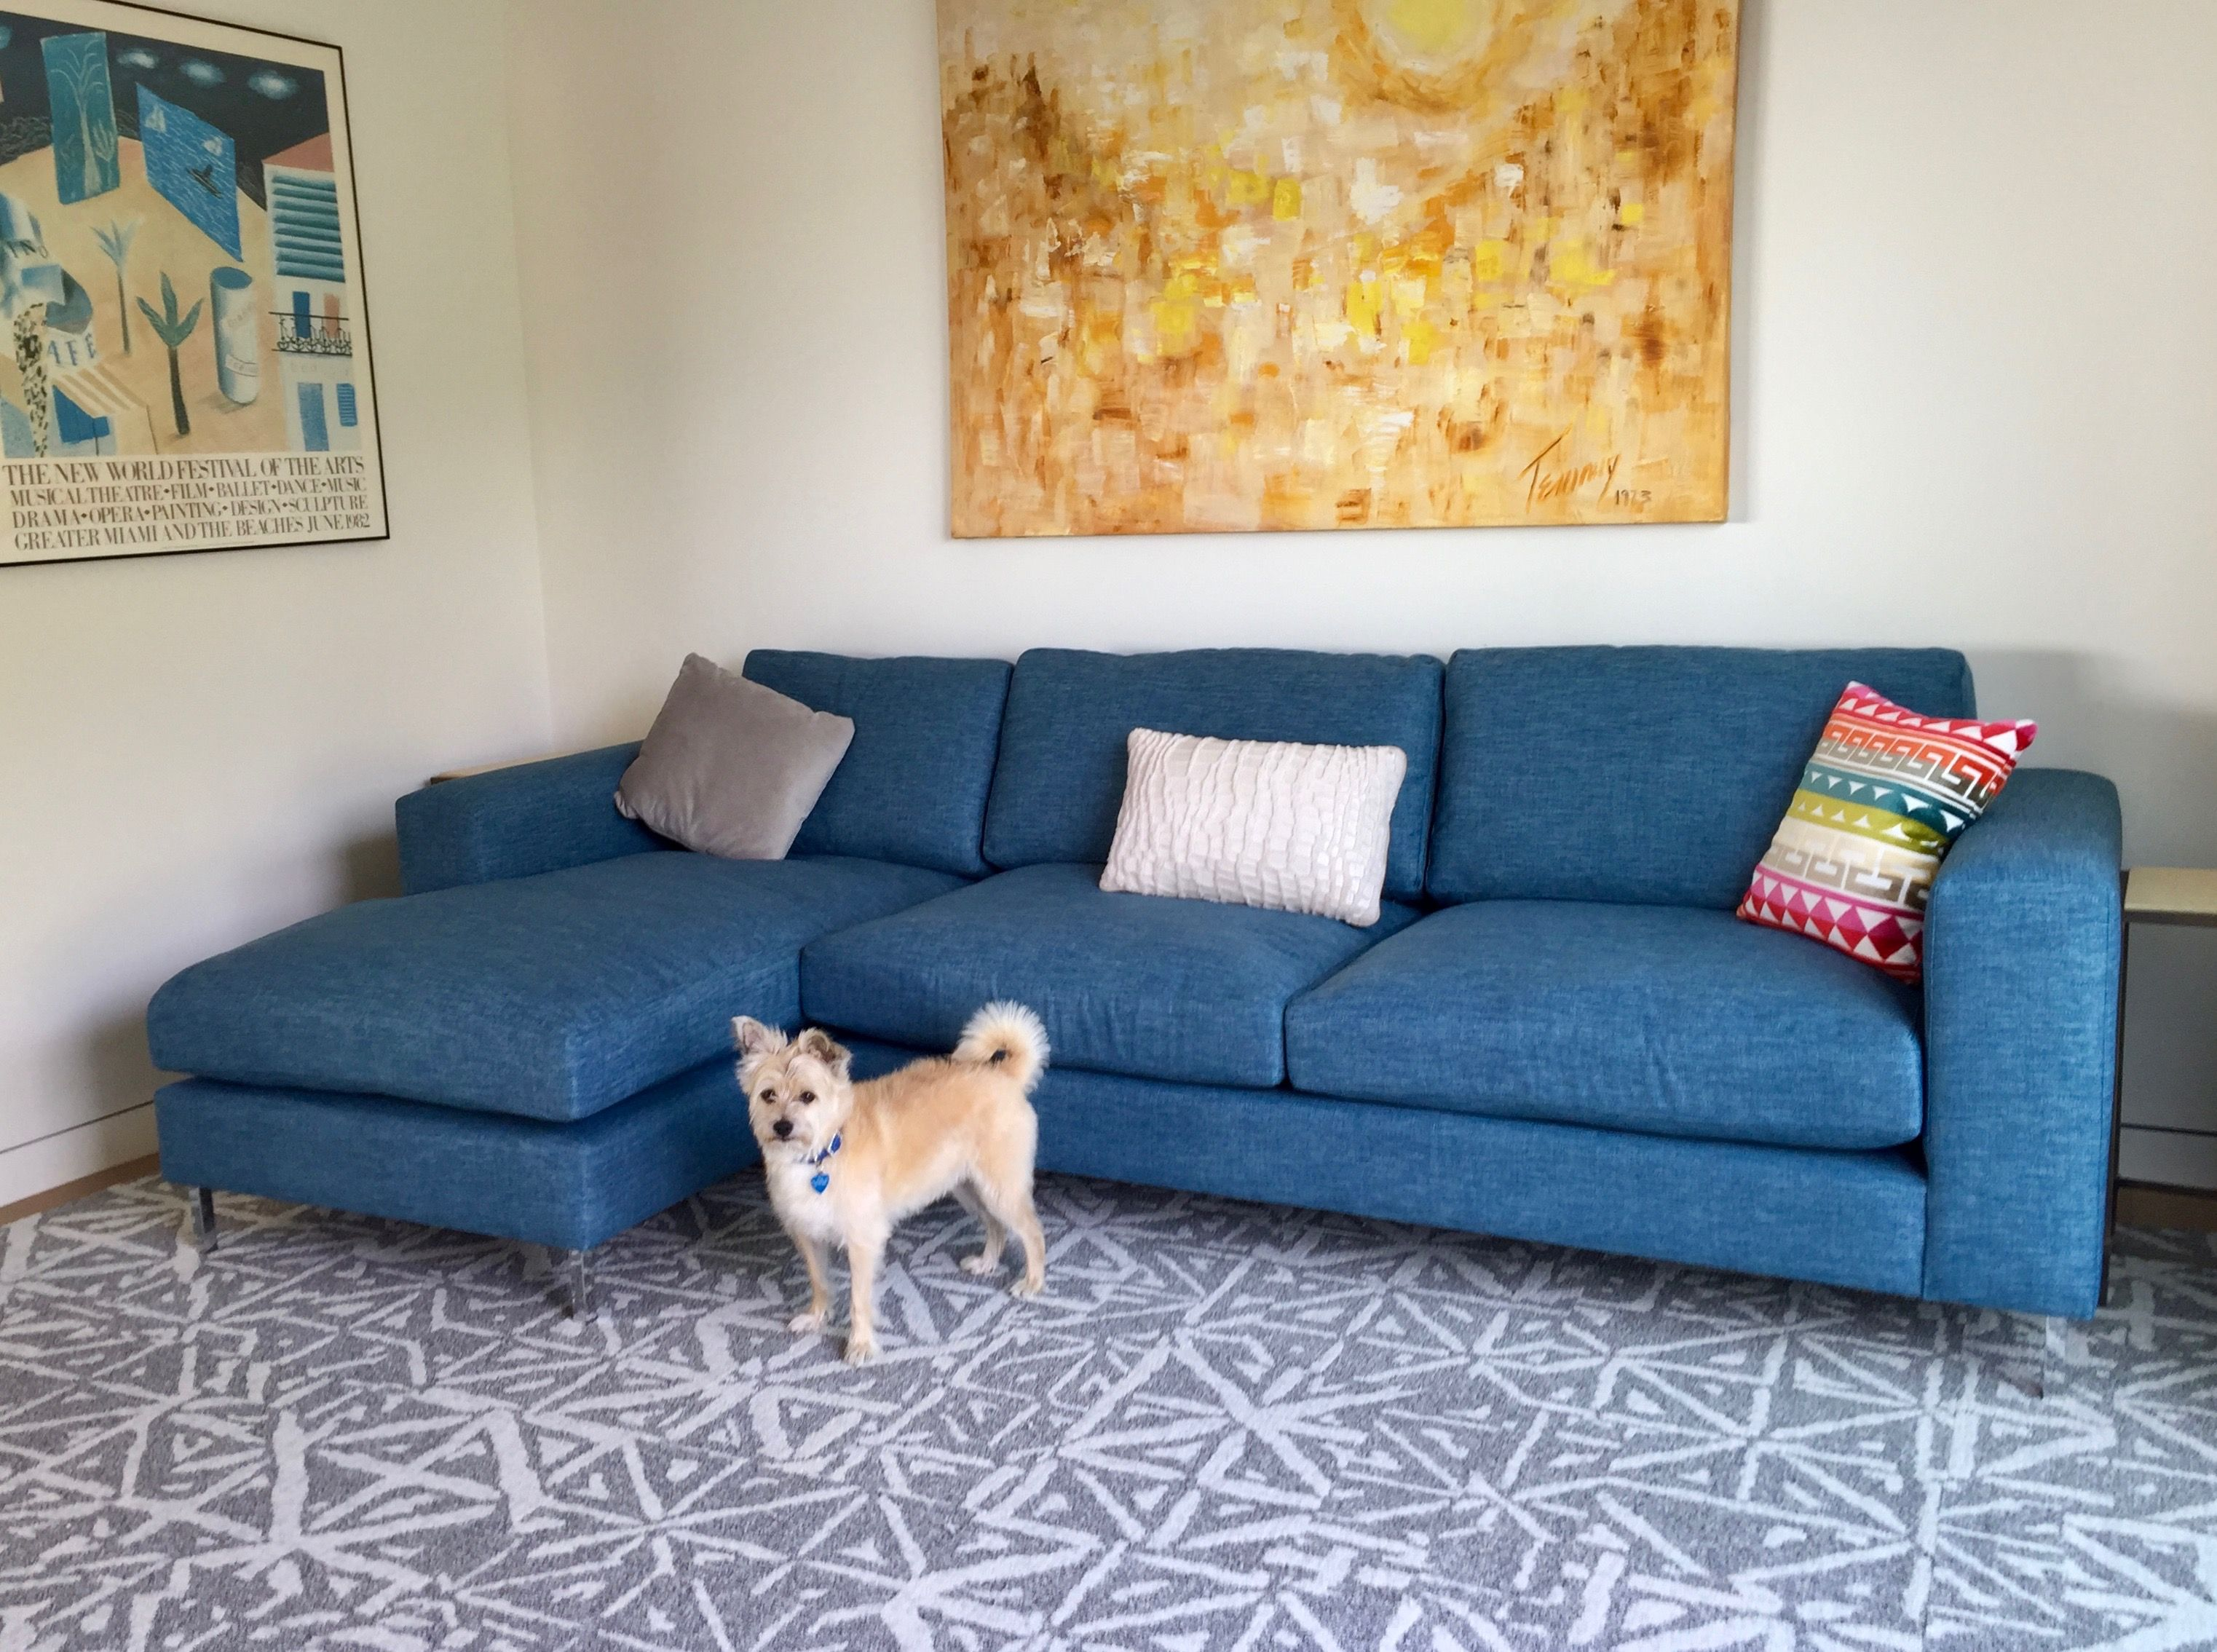 The Sofa Company Offers Over Custom Furniture Styles In Their Los Angeles  Retail Furniture ...